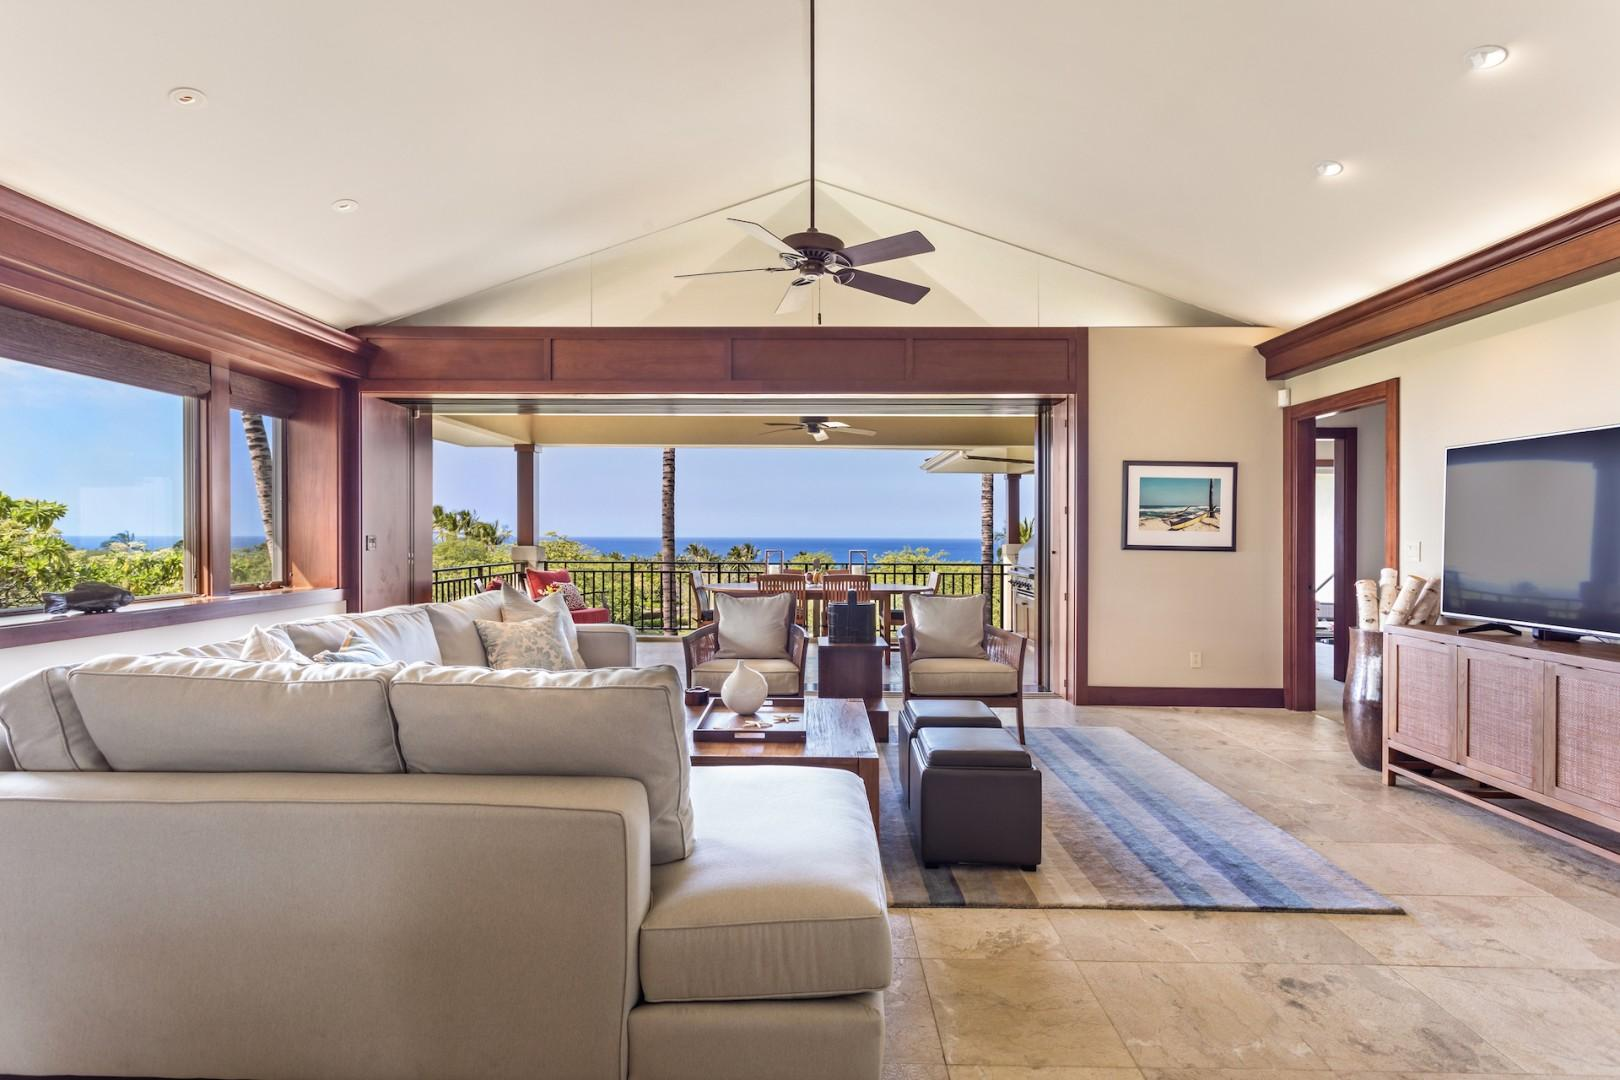 Living area with ample seating and ocean views.